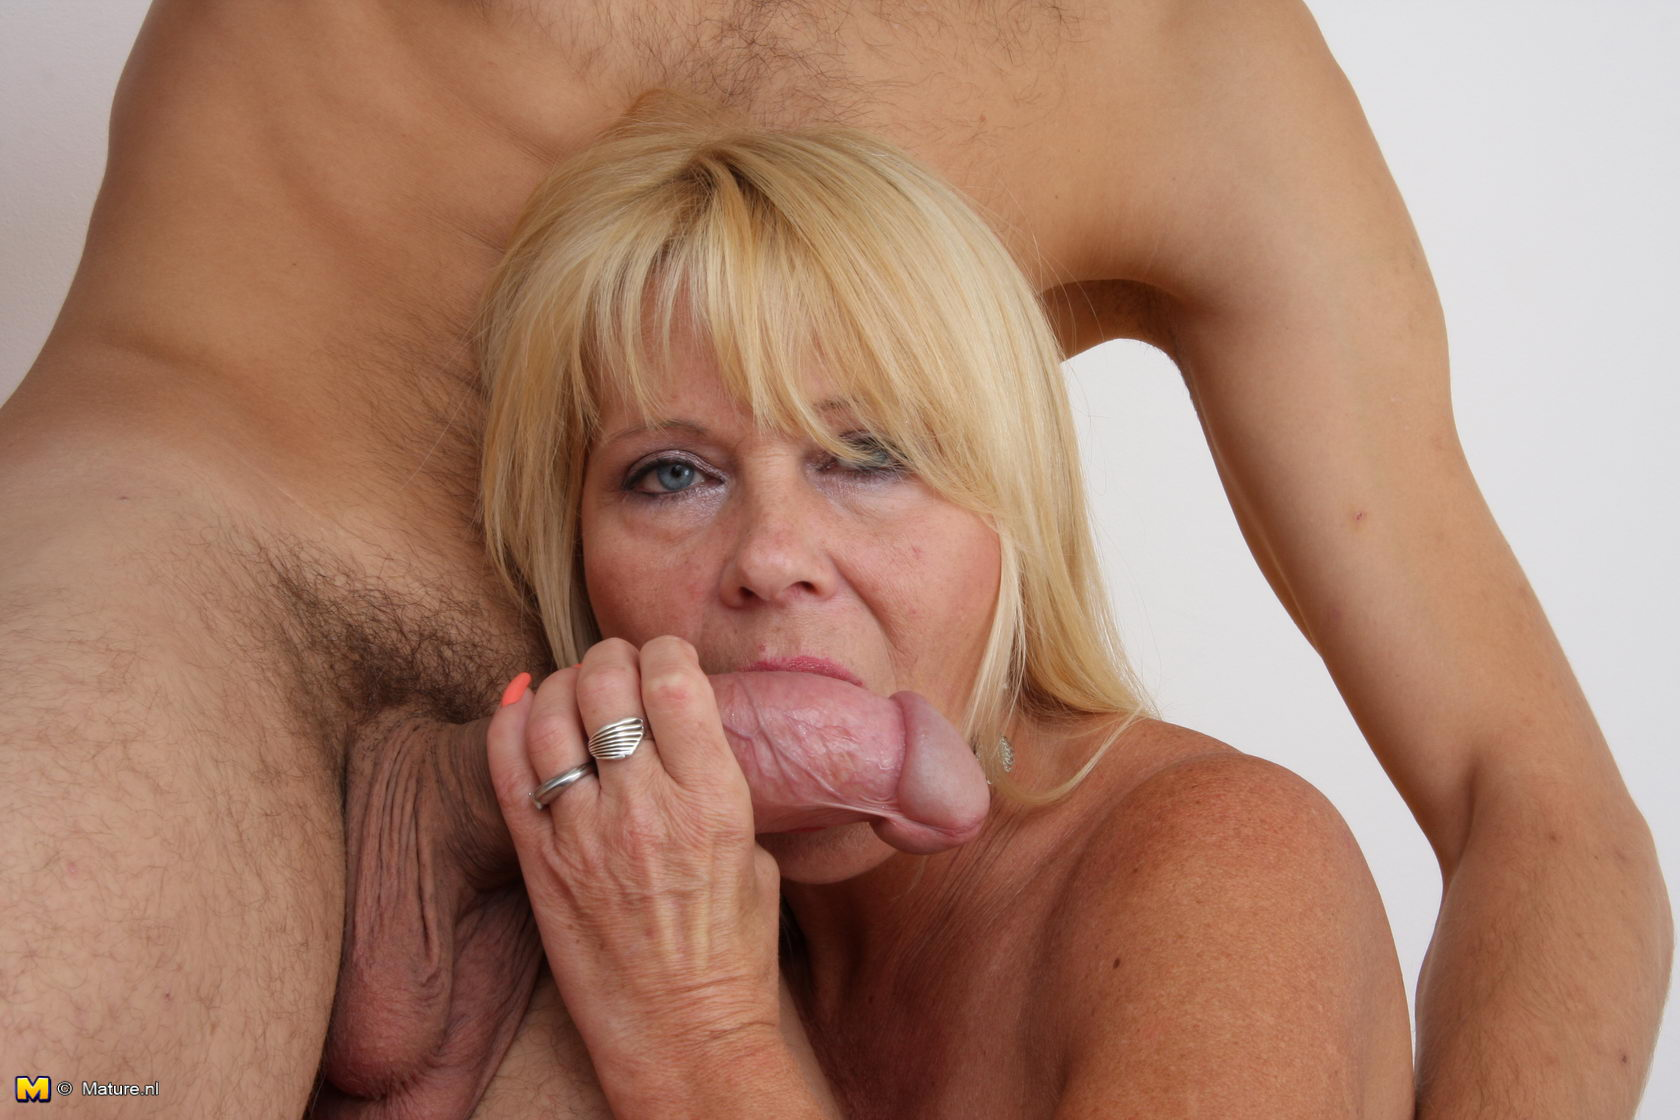 HotAmateurMaturecom - Mature Housewives, Amateur Milf